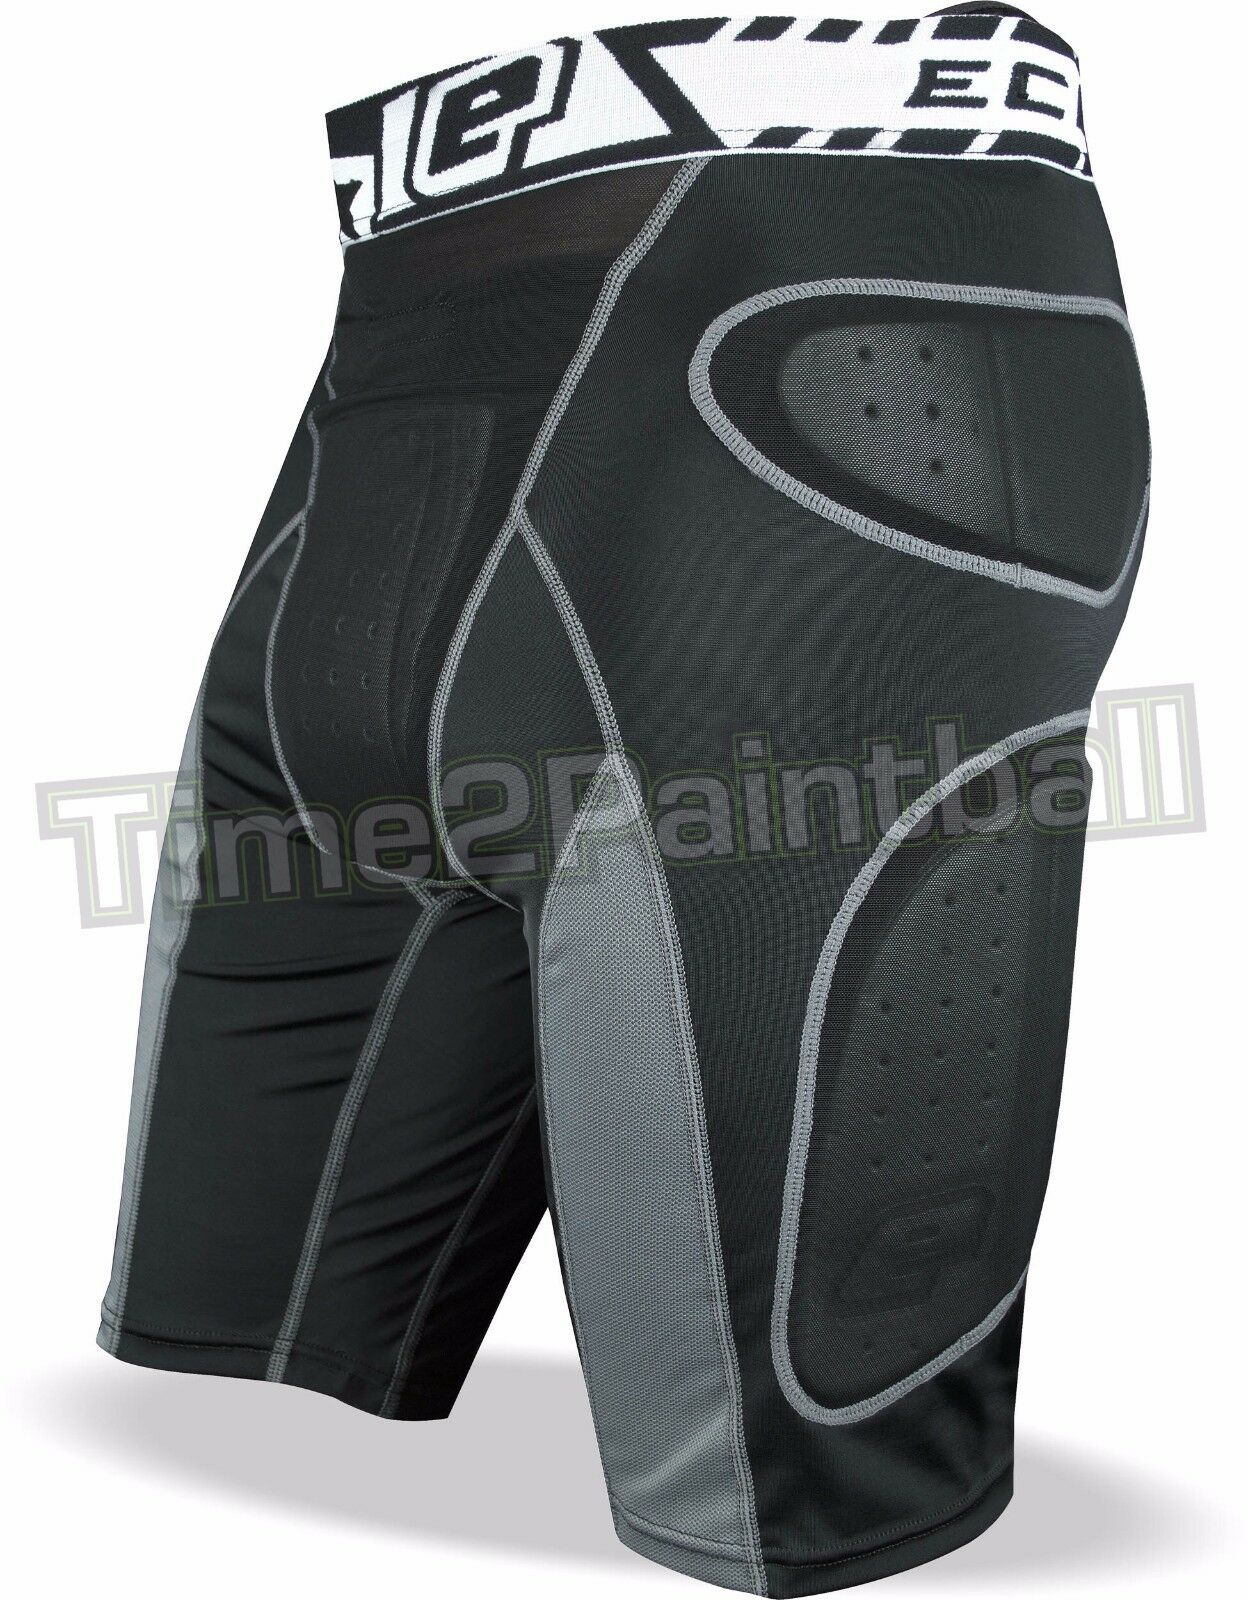 Planet Eclipse Overload Gen2 Slide Shorts Small FREE SHIPPING Paintball